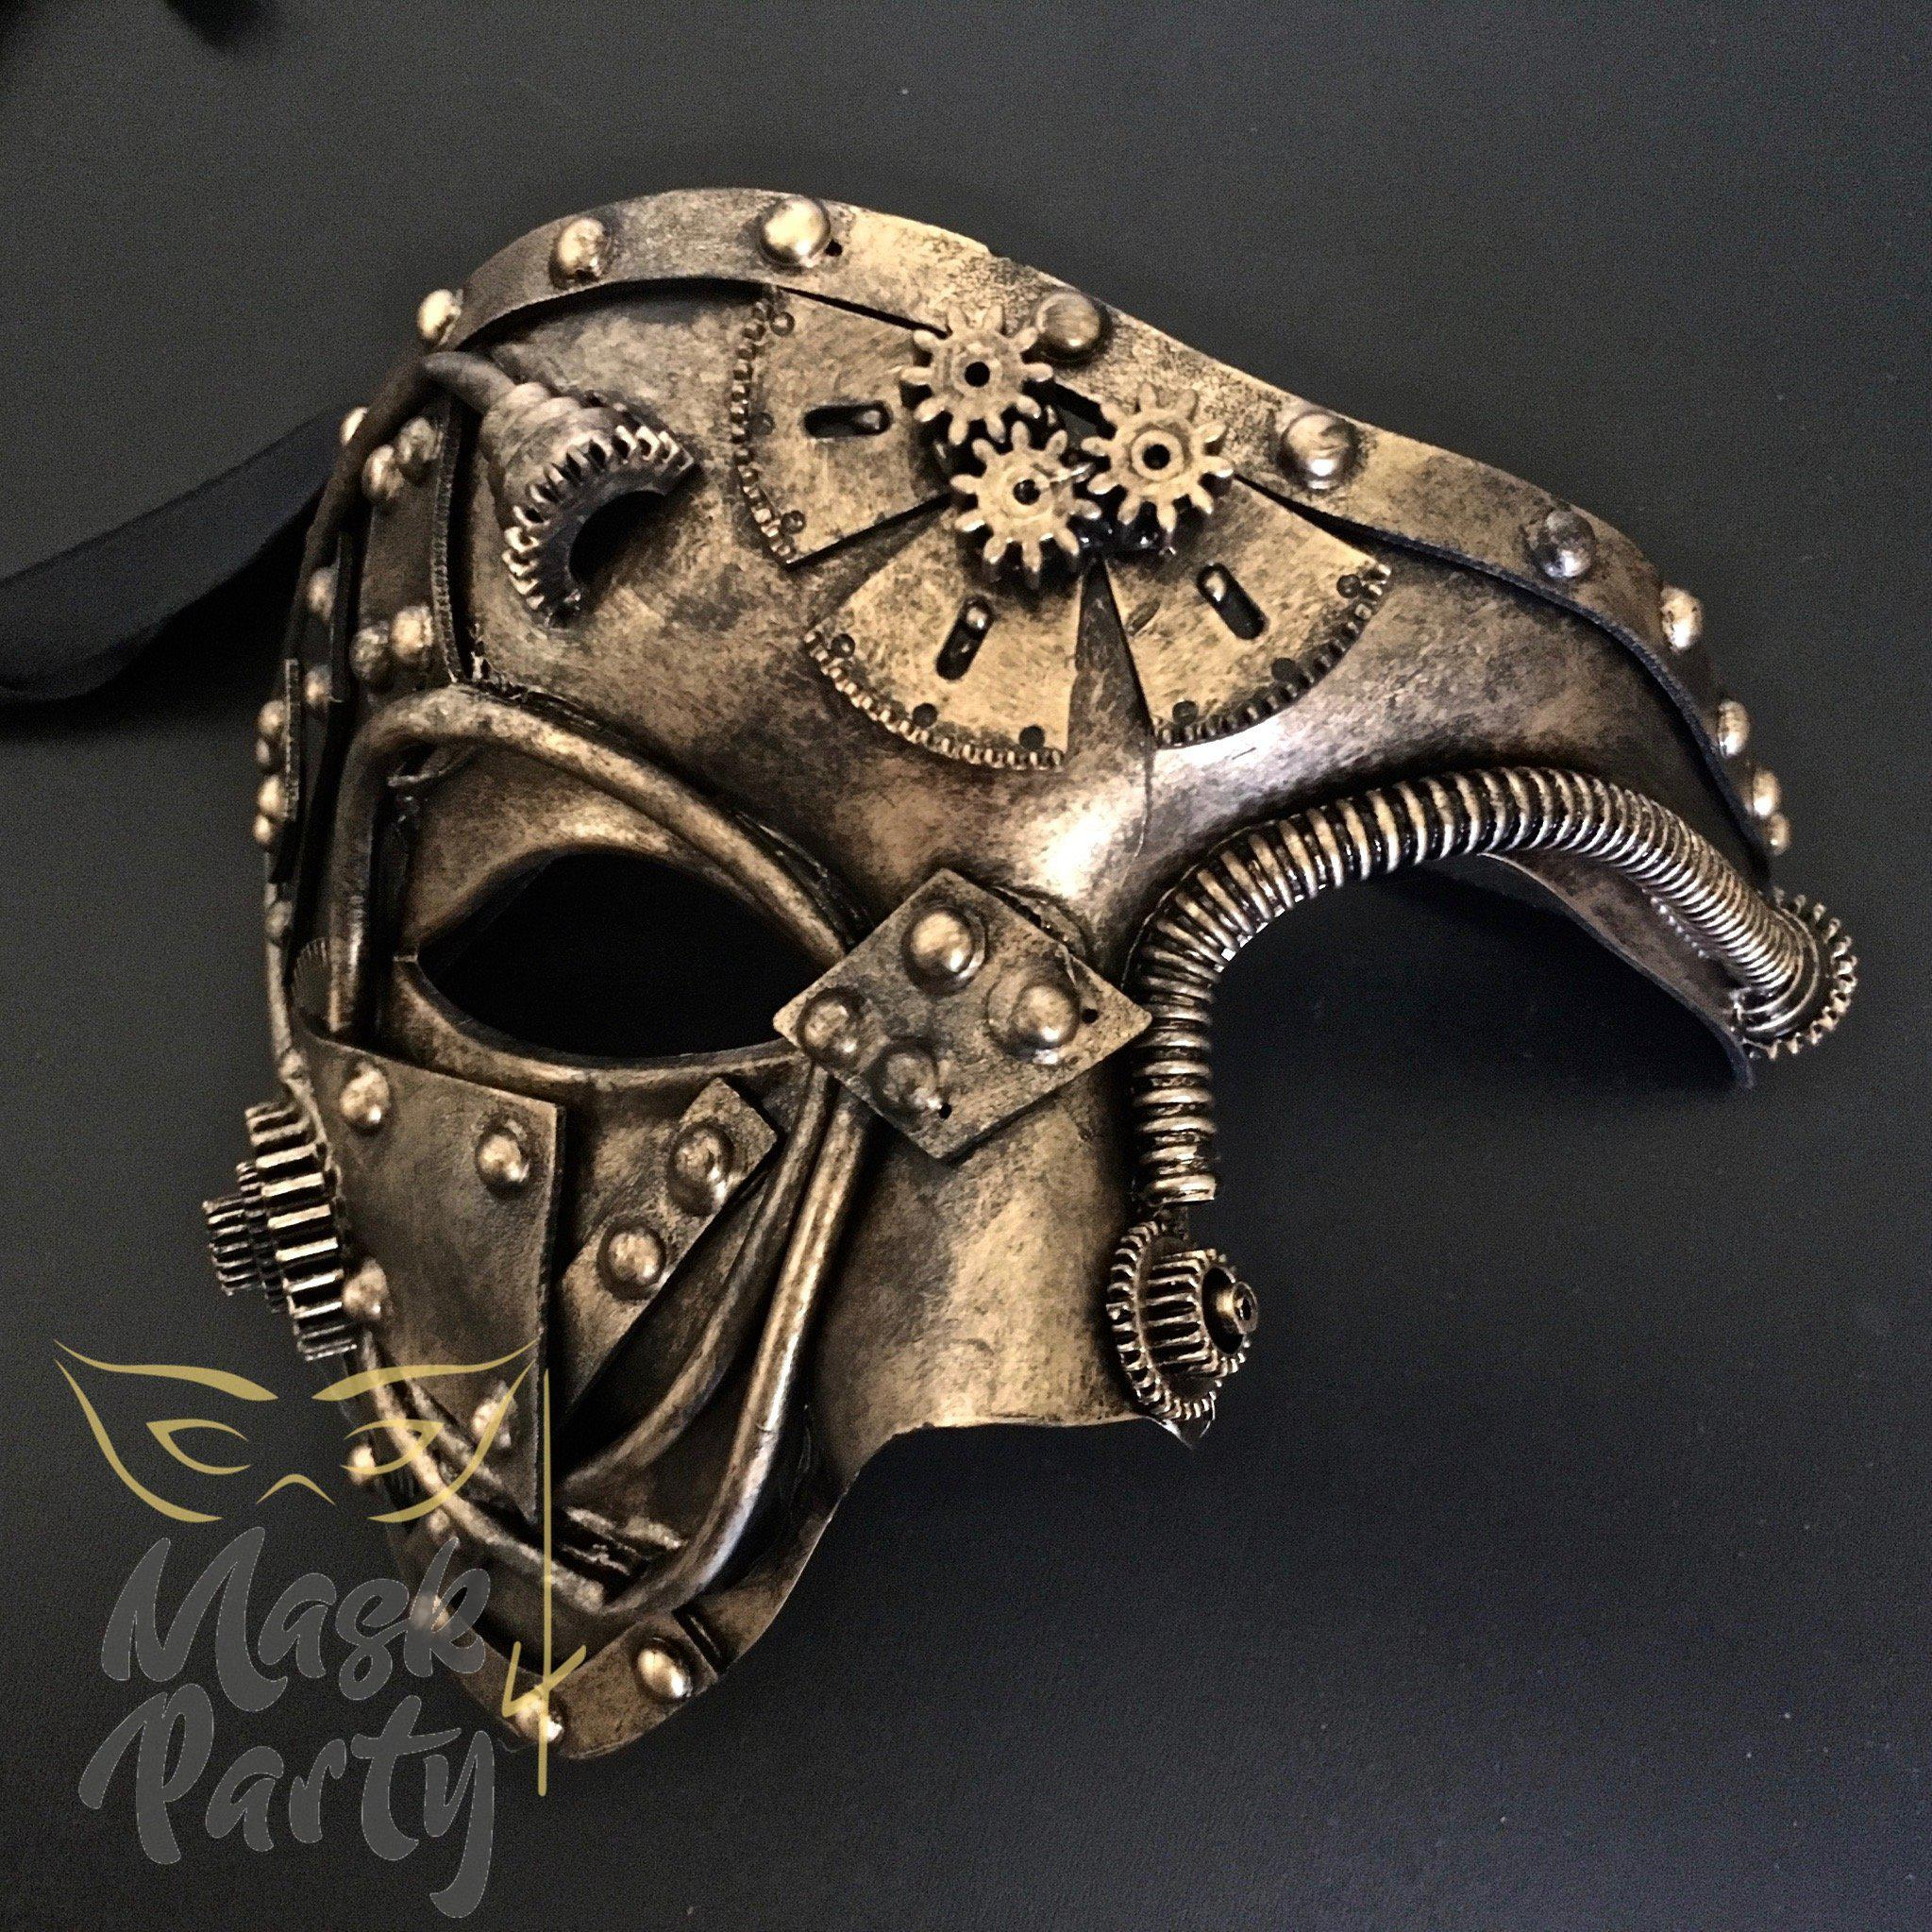 Steampunk Mask - Gear & Tube - Black/Gold - Mask4Party